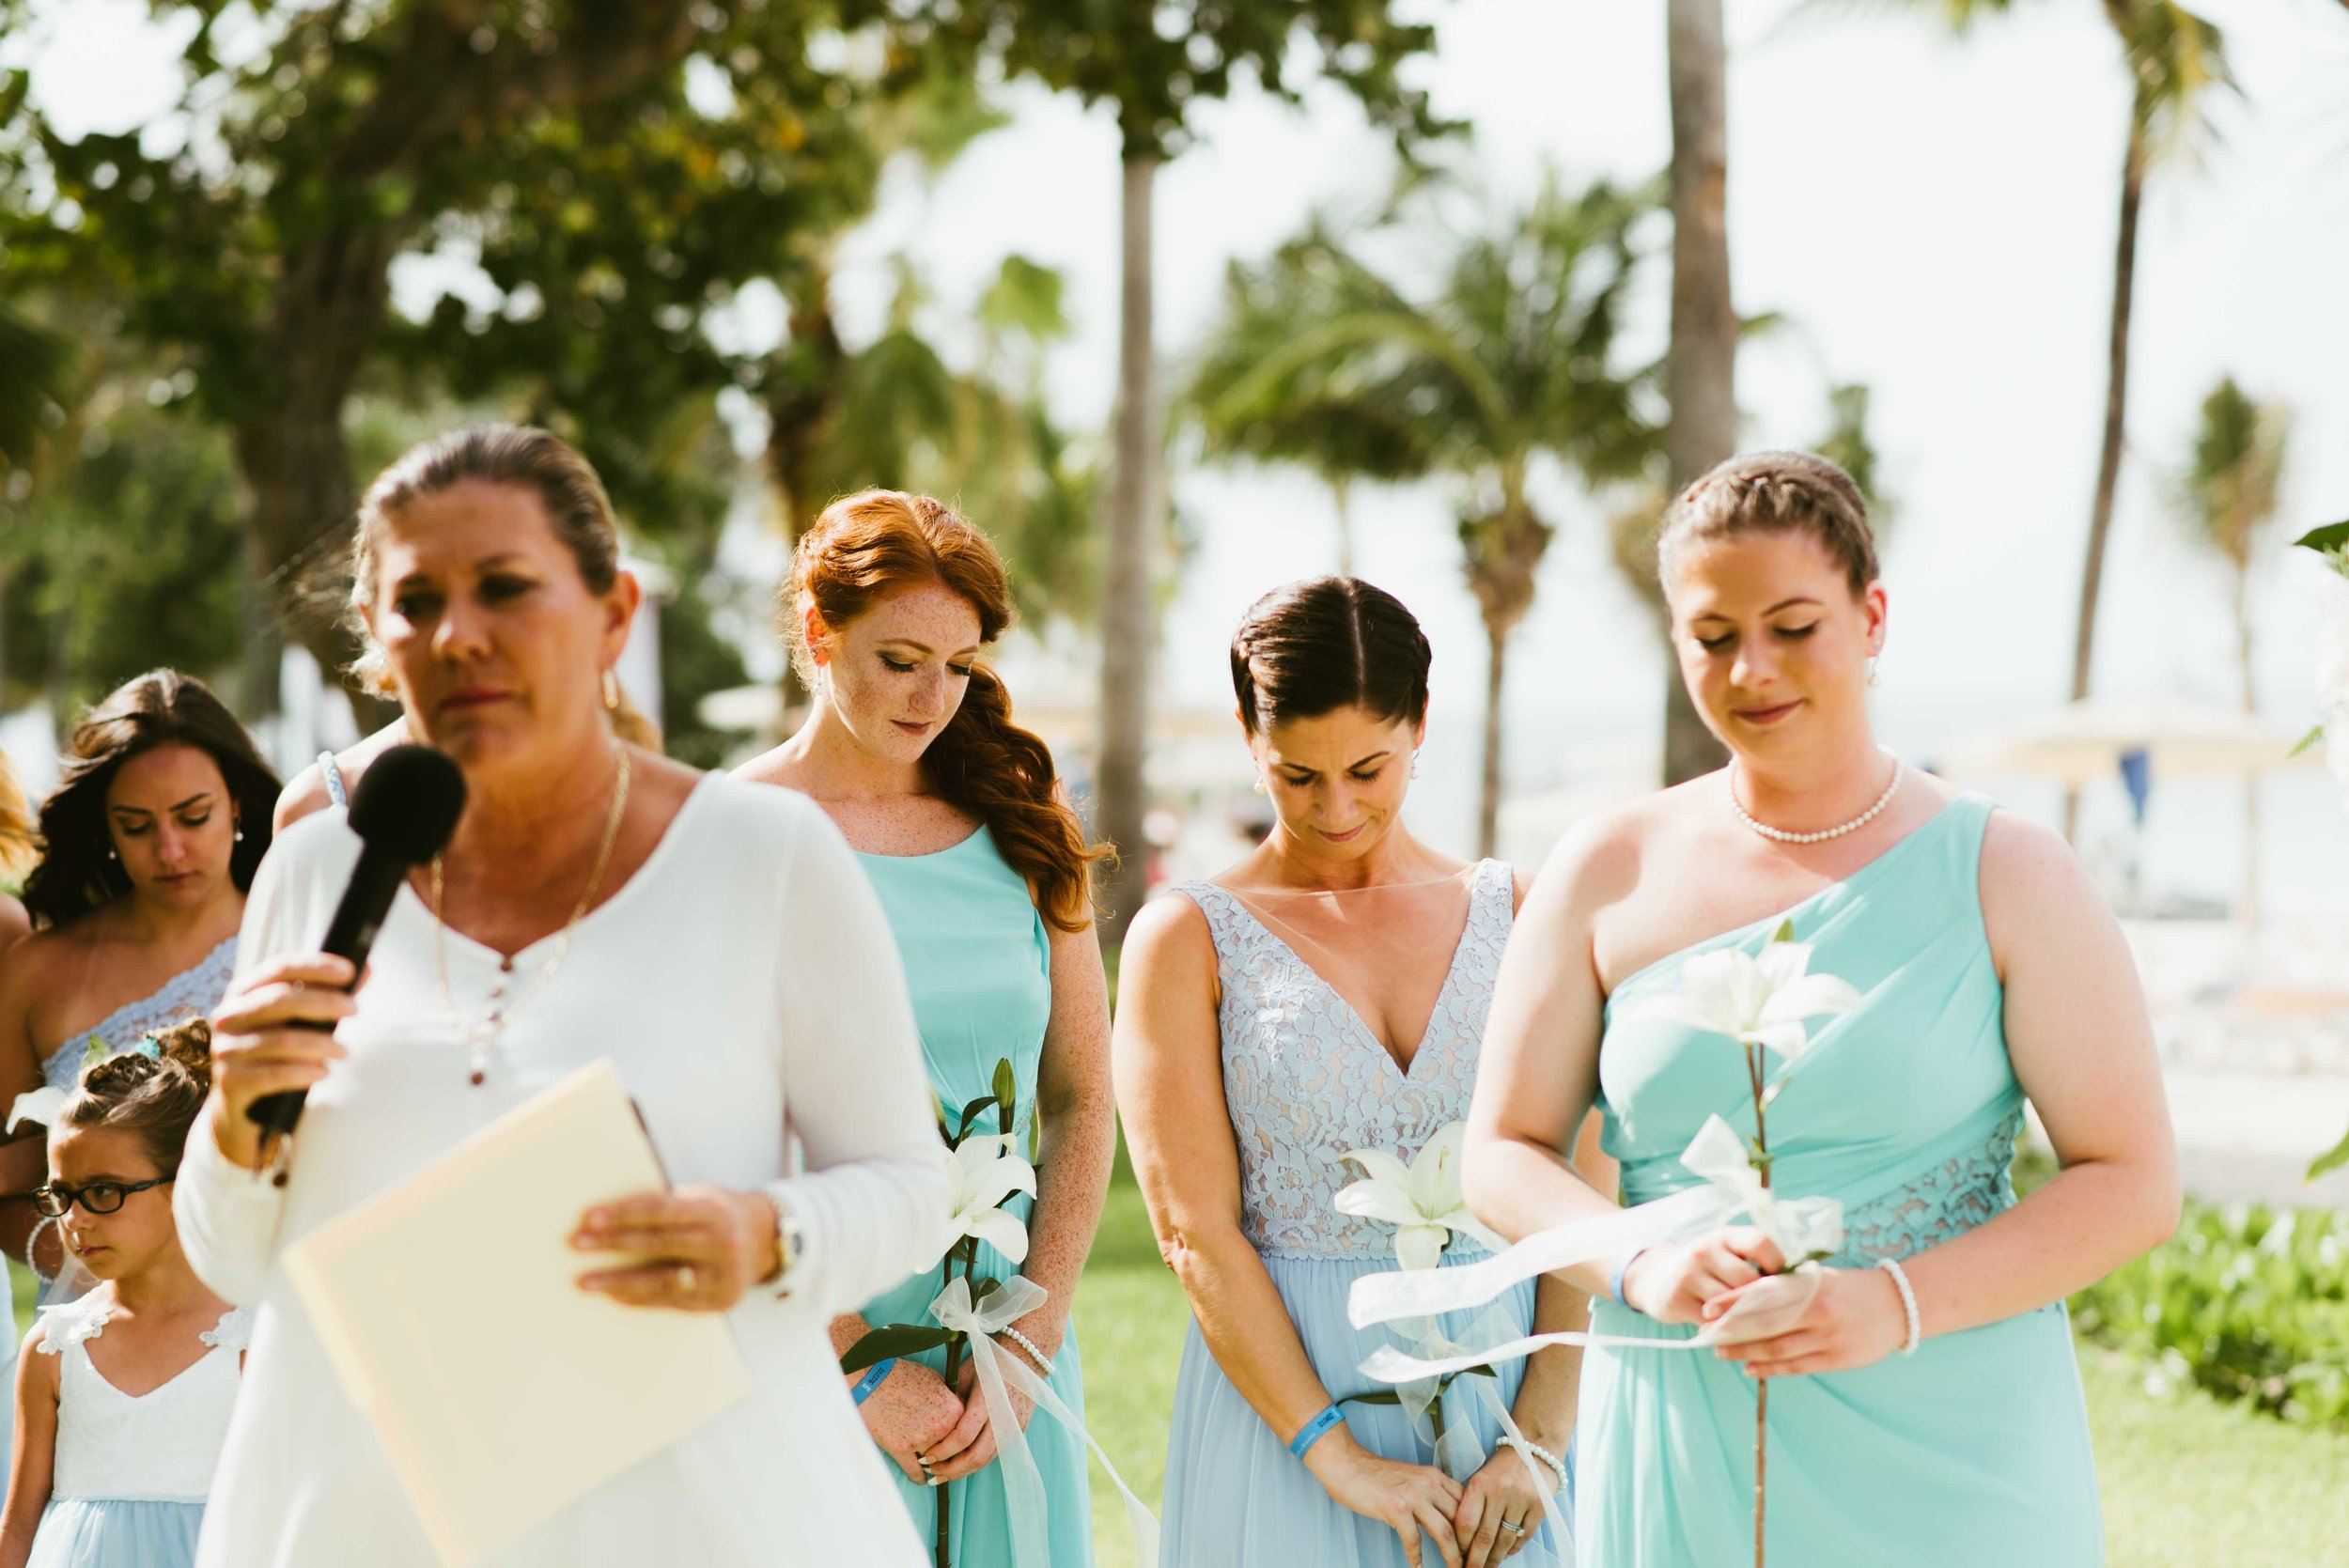 Beach-Wedding-Photography-Cancun-Elopement-Destination-Elopement-Photography-Destination-Beach-Wedding-+Costa-Rica-Wedding-Photography-Beach-Wedding-Photos-teresawoodhull-Cancun-Elopement-Beach-Wedding-+Sunset-Beach-Wedding-Fotografia-de-bodas-Nicoya-Peninsula-Elopement-Photographer-Santa-Teresa-Elopement-Photographer-Adventure-elopement-photographer-Santa-Teresa-Wedding-Photographer-Adventure-Wedding-Boda-playa-santa-teresa-Adventure-Wedding-Photography-Adventure-Wedding-Photographer-Beach-Elopement-Beach-Elopement-Photos-maddie-mae-Beach-Elopement-Photographer-Destination-Elopement-Photographer-Sunset-Beach-Elopement-Mexico-wedding-photographer-cabo-wedding-photographer-mexico-wedding-mexico-destination-wedding-cancun-destination-wedding-cancun-elopement-photographer-playa-del-carmen-wedding-playa-del-carmen-destination-wedding-photographer-playa-del-carmen-wedding-photography-Nicoya-Peninsula-Wedding-Photography-Nicoya-Peninsula-Wedding-Photographer-Nicoya-Peninsula-Elopement-Photography-ceremony-wedding-party-reaction